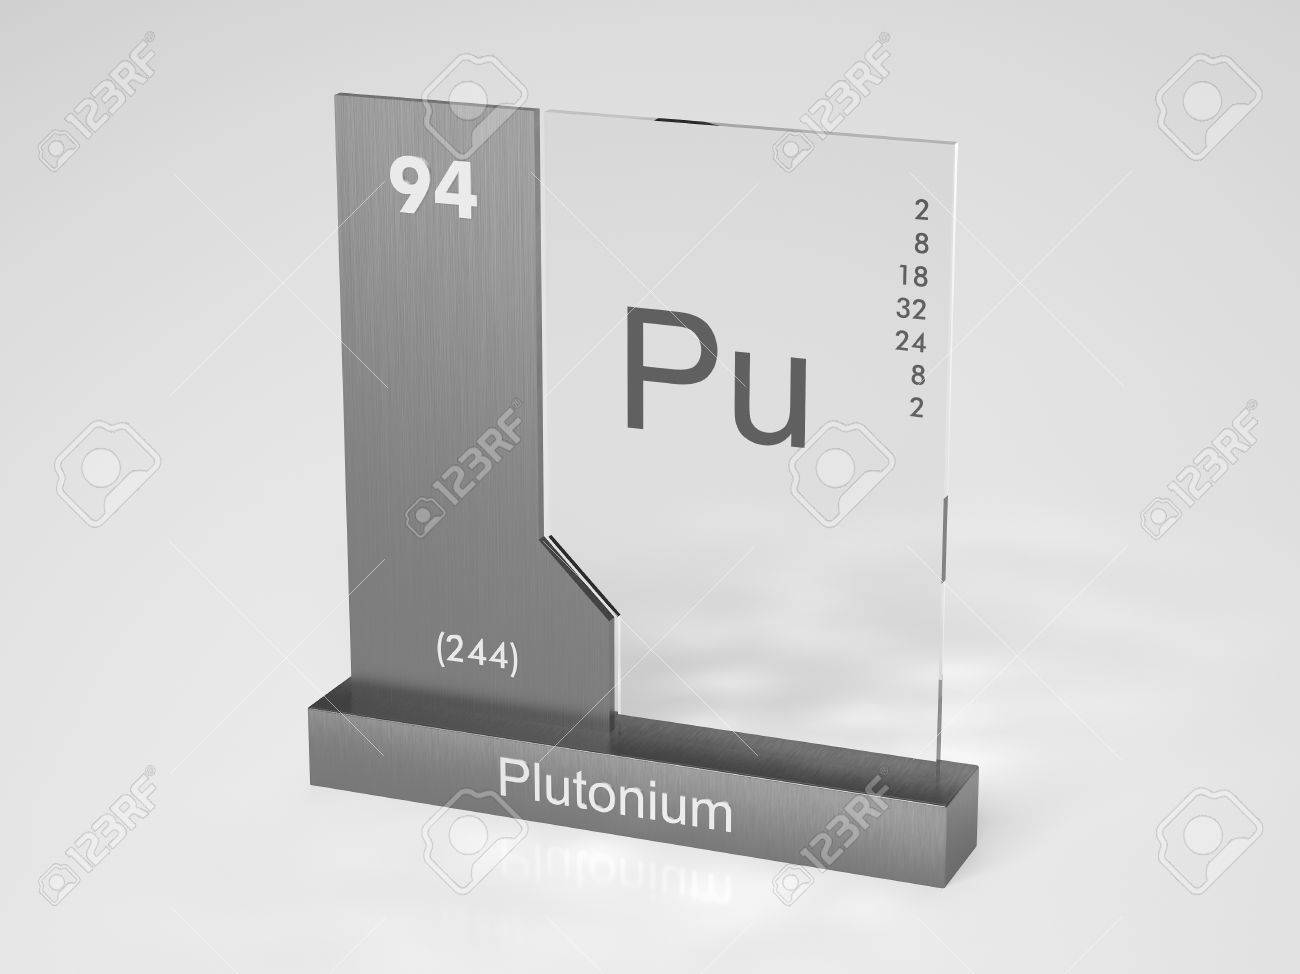 Plutonium symbol pu chemical element of the periodic table stock plutonium symbol pu chemical element of the periodic table stock photo 11503393 biocorpaavc Image collections